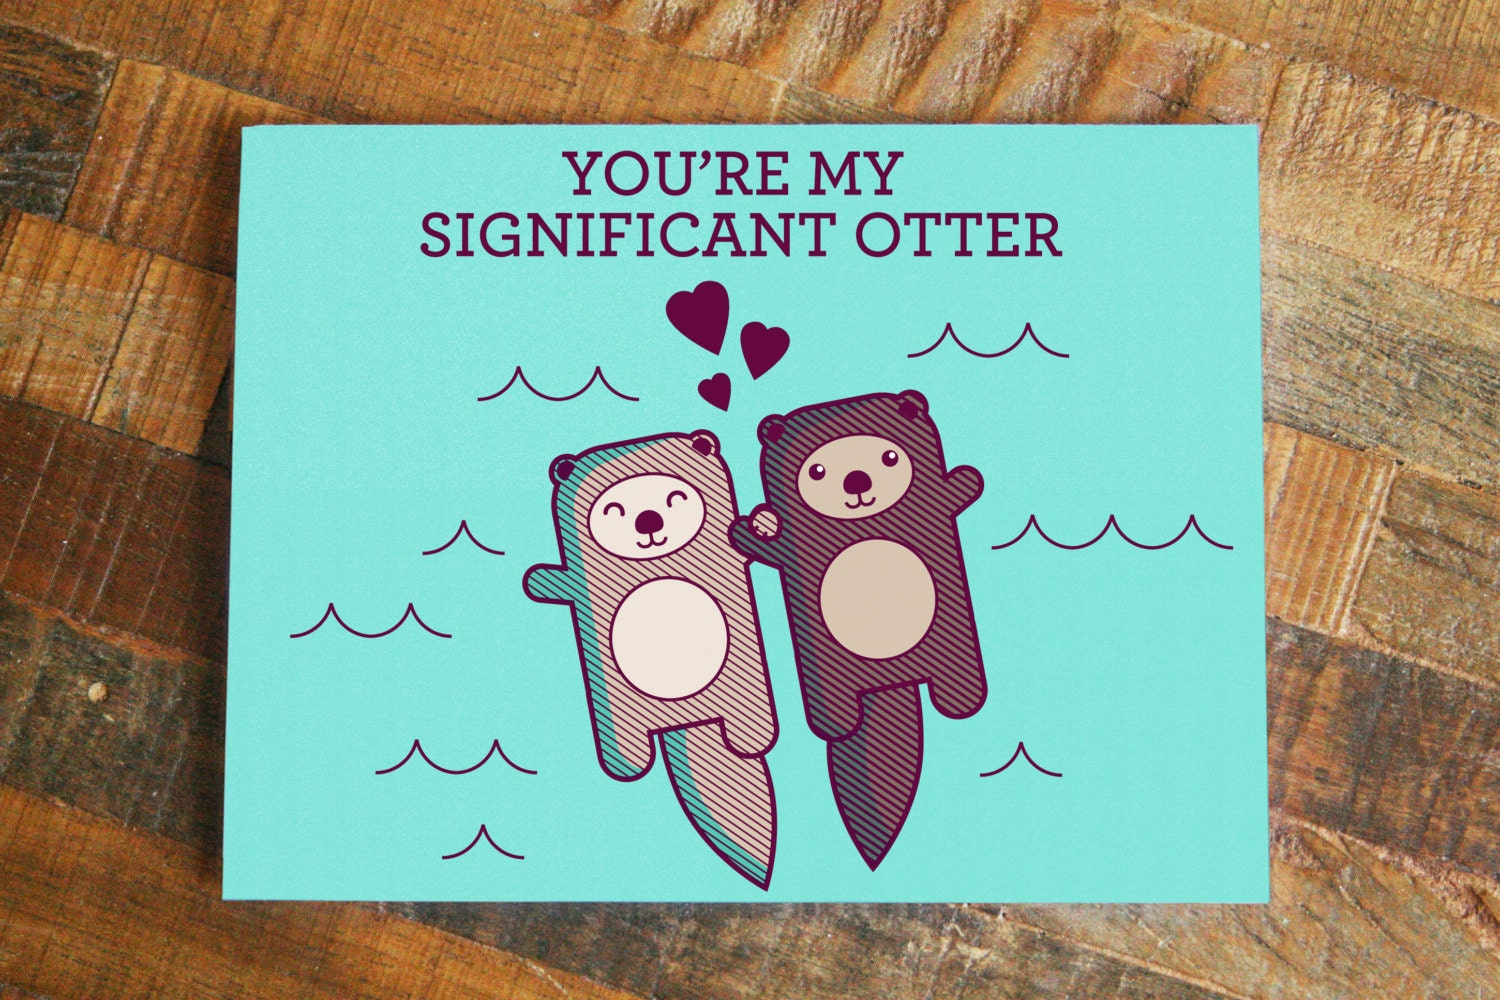 Cute animal puns for valentines day - photo#23